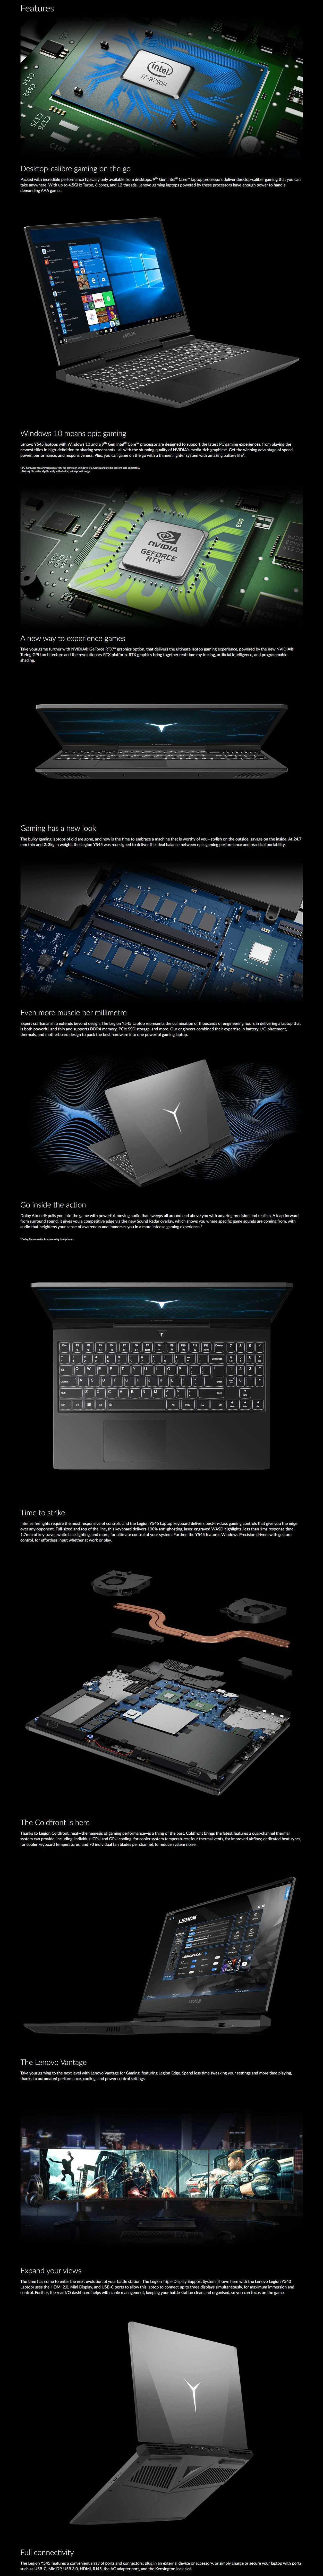 """A large marketing image providing additional information about the product Lenovo Legion Y545 15.6"""" i7 RTX 2060 Windows 10 Gaming Notebook - Additional alt info not provided"""